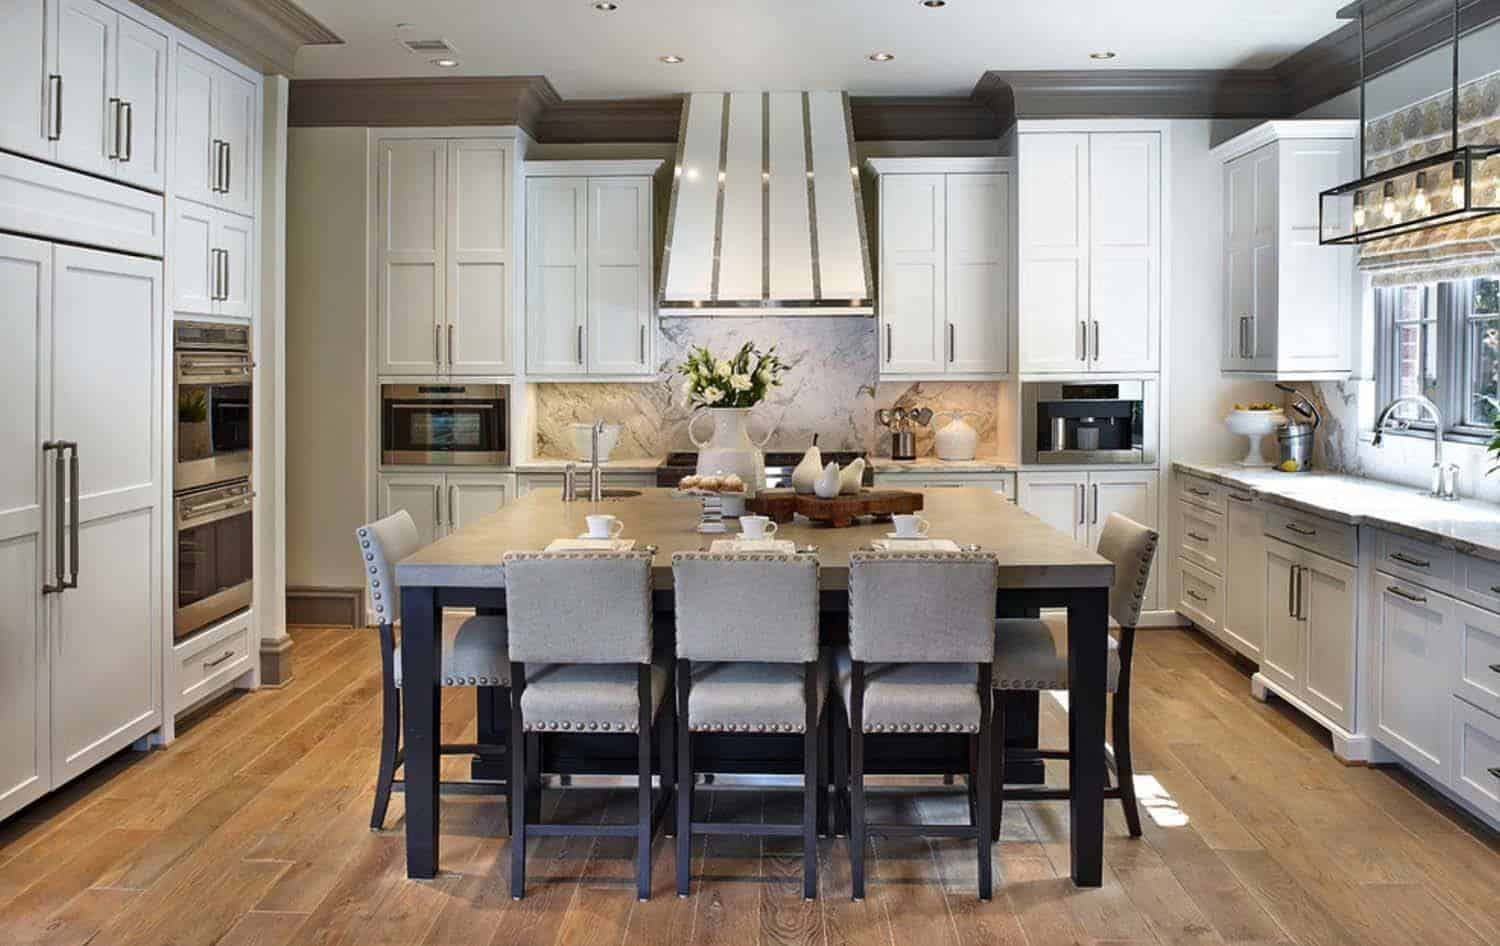 kitchen island options 30 brilliant kitchen island ideas that make a statement 4072